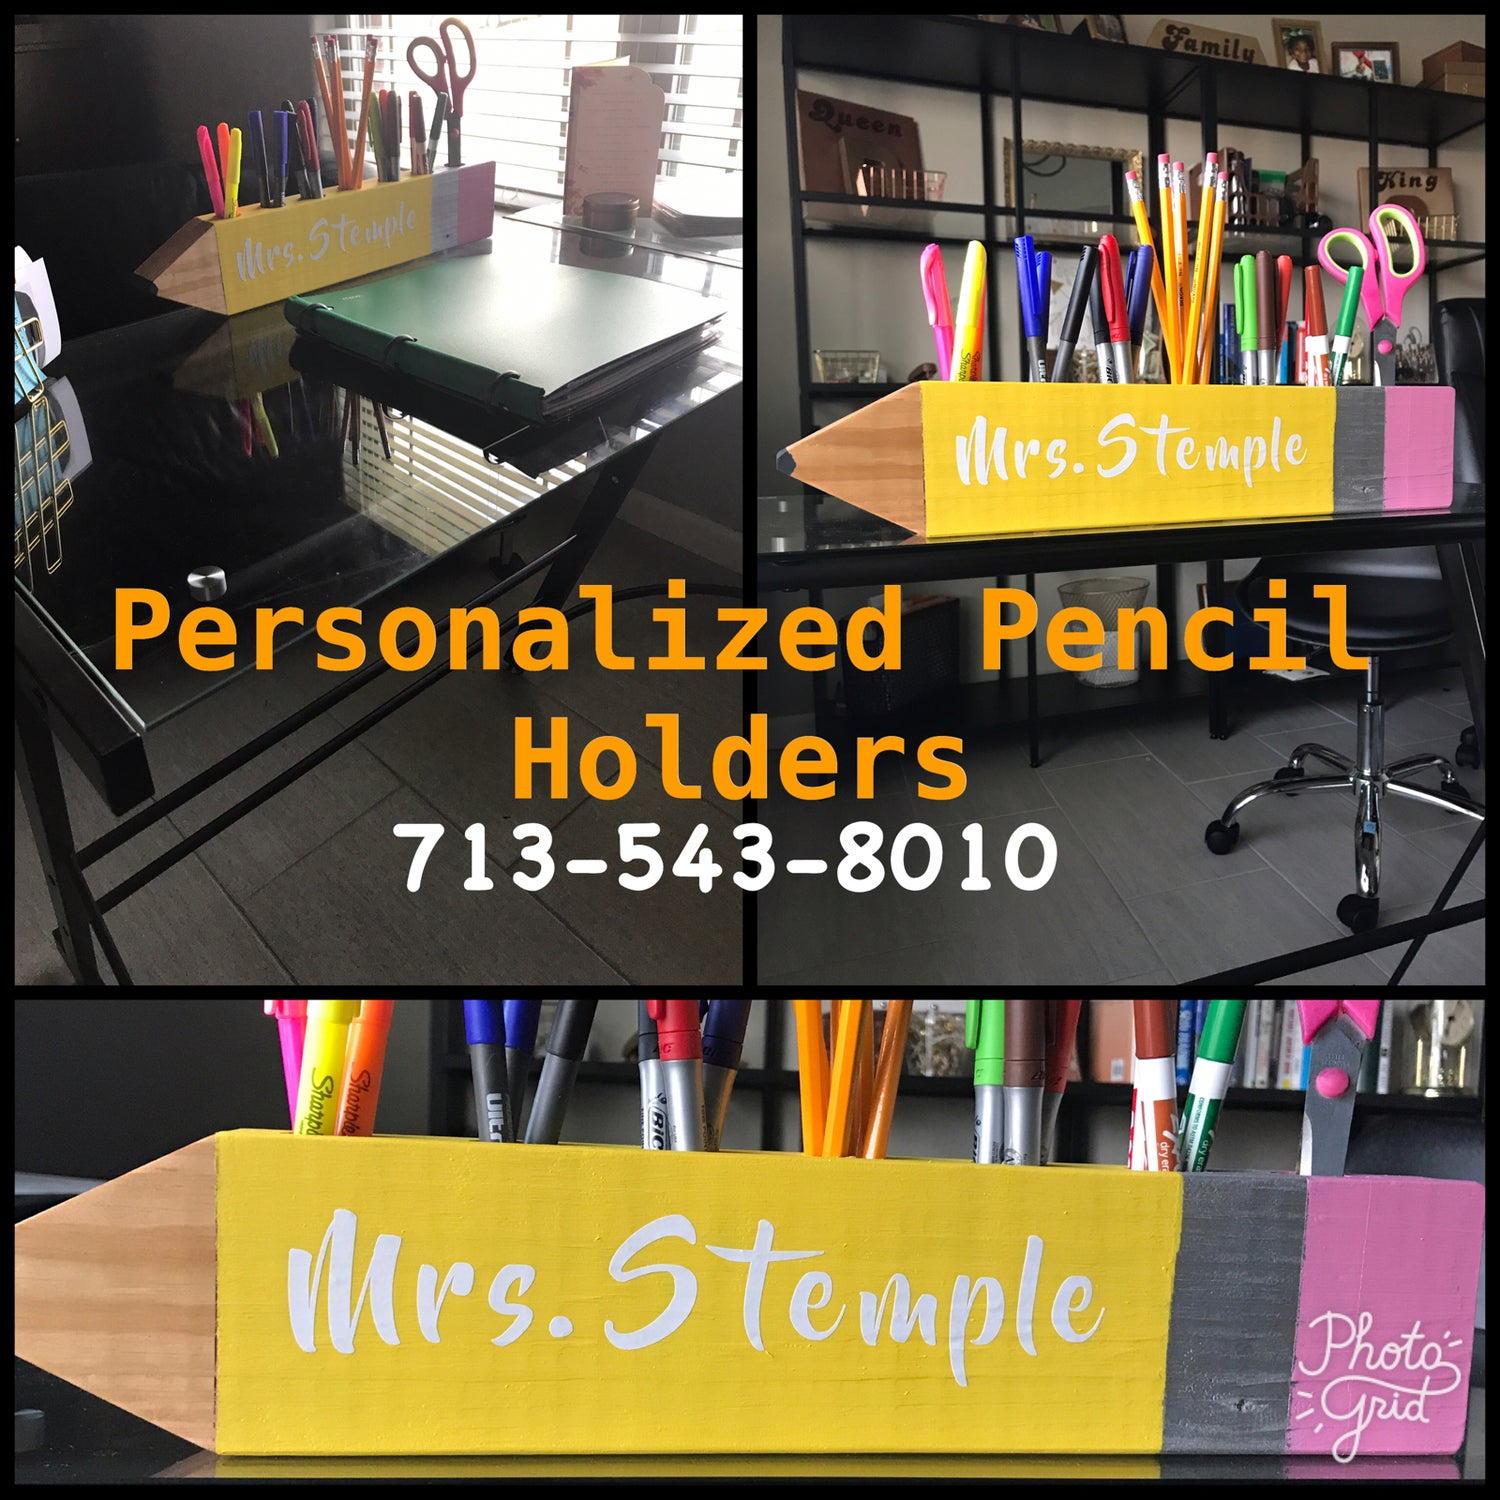 Image of Personalized Pencil Holders